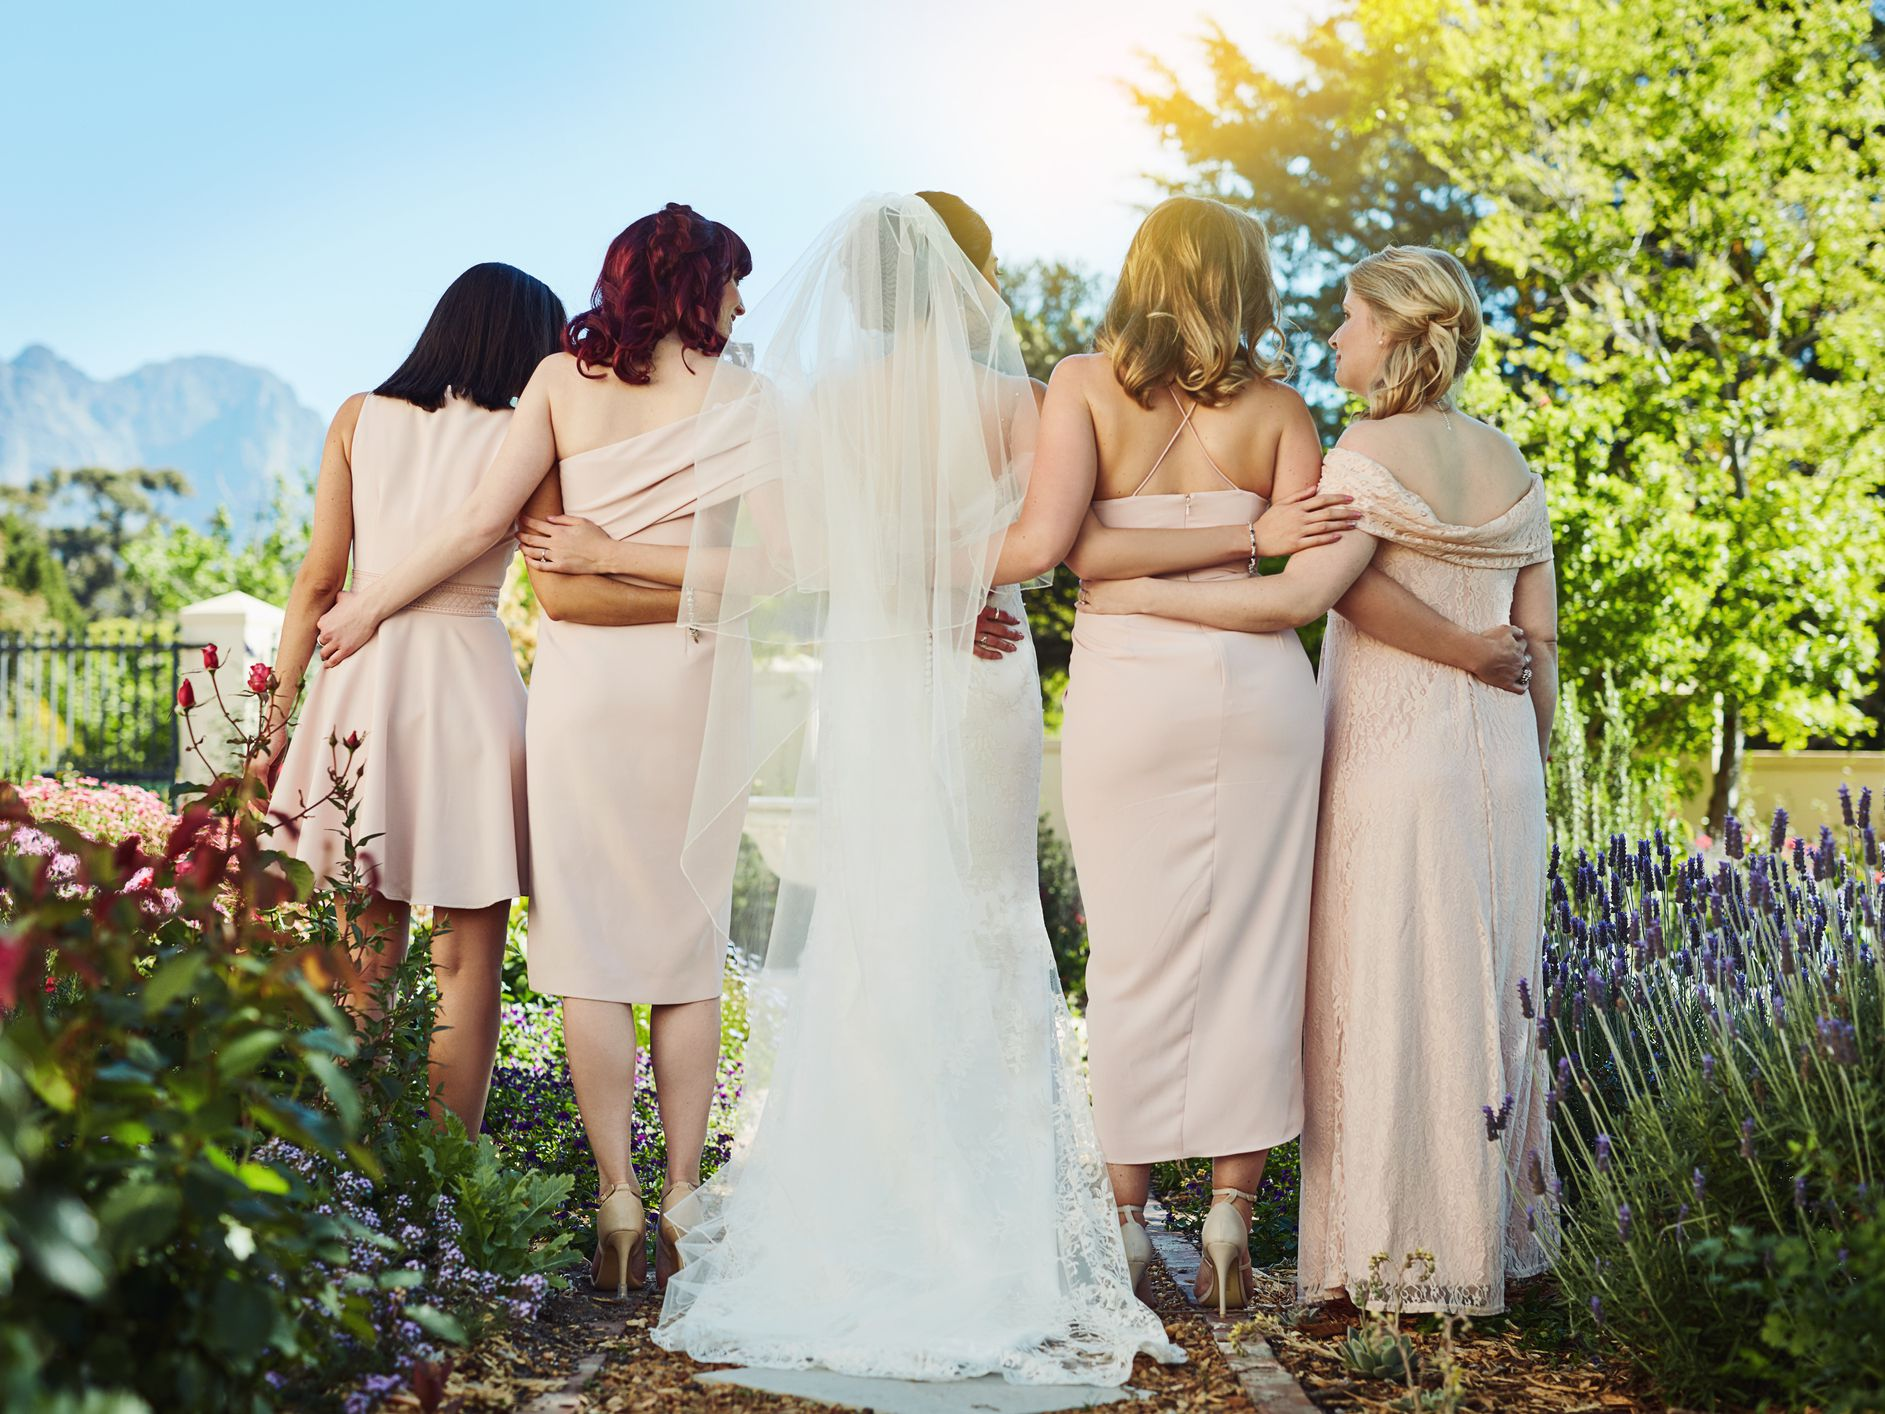 The Best Places To Rent Bridesmaid Dresses